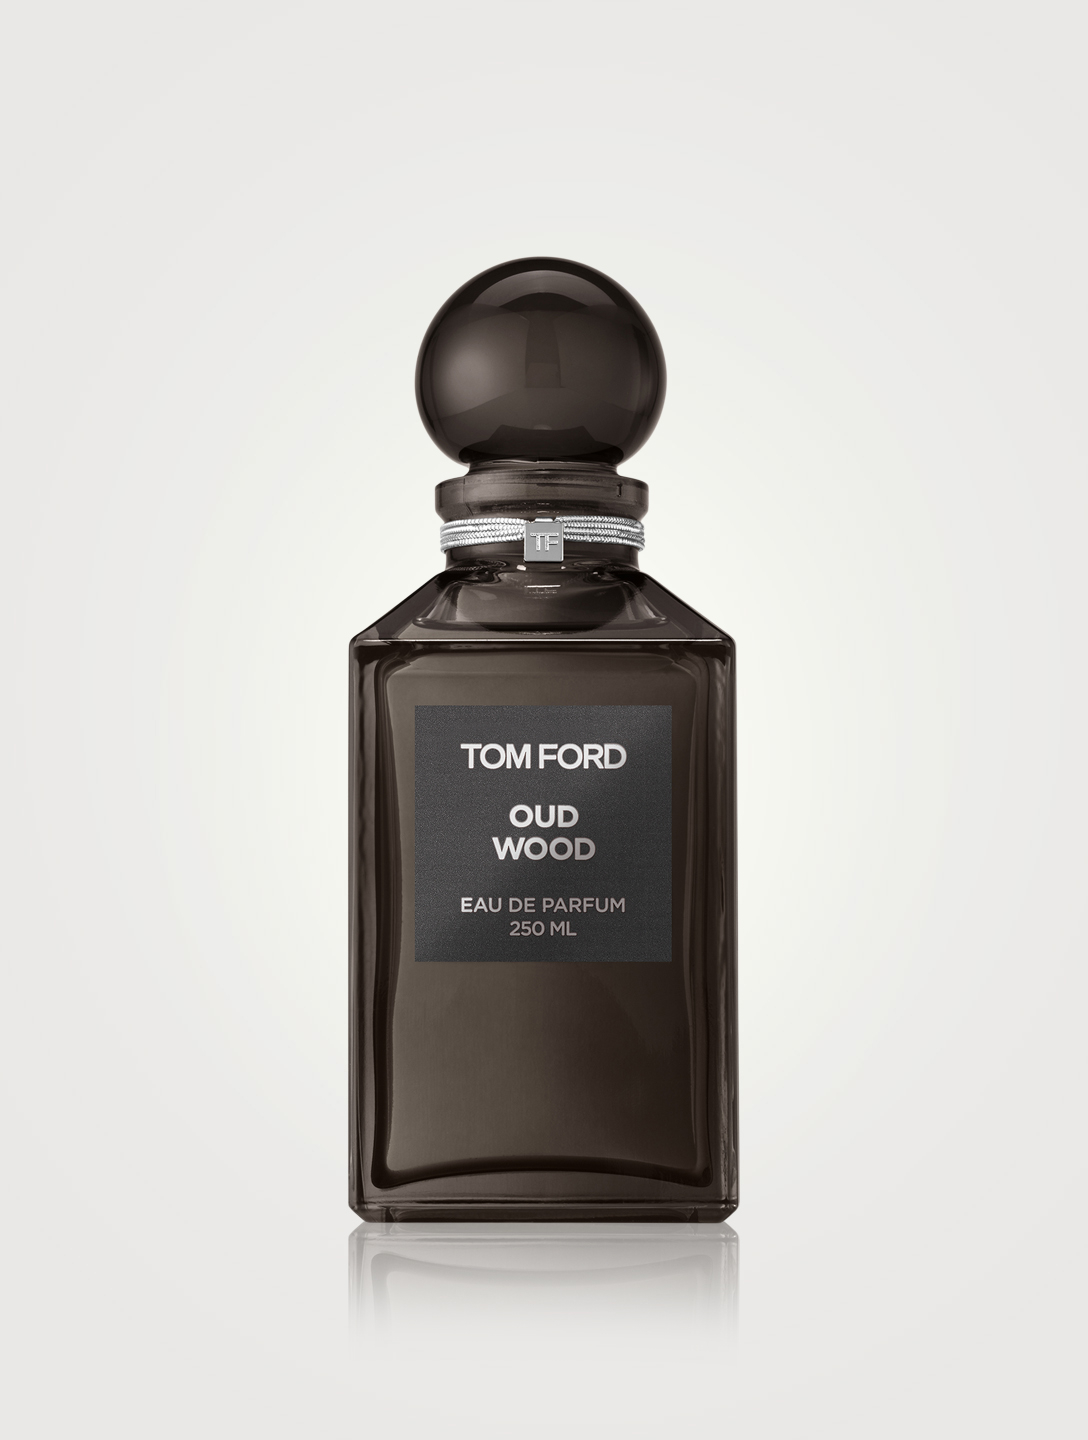 TOM FORD Eau de parfum Oud Wood Beauté